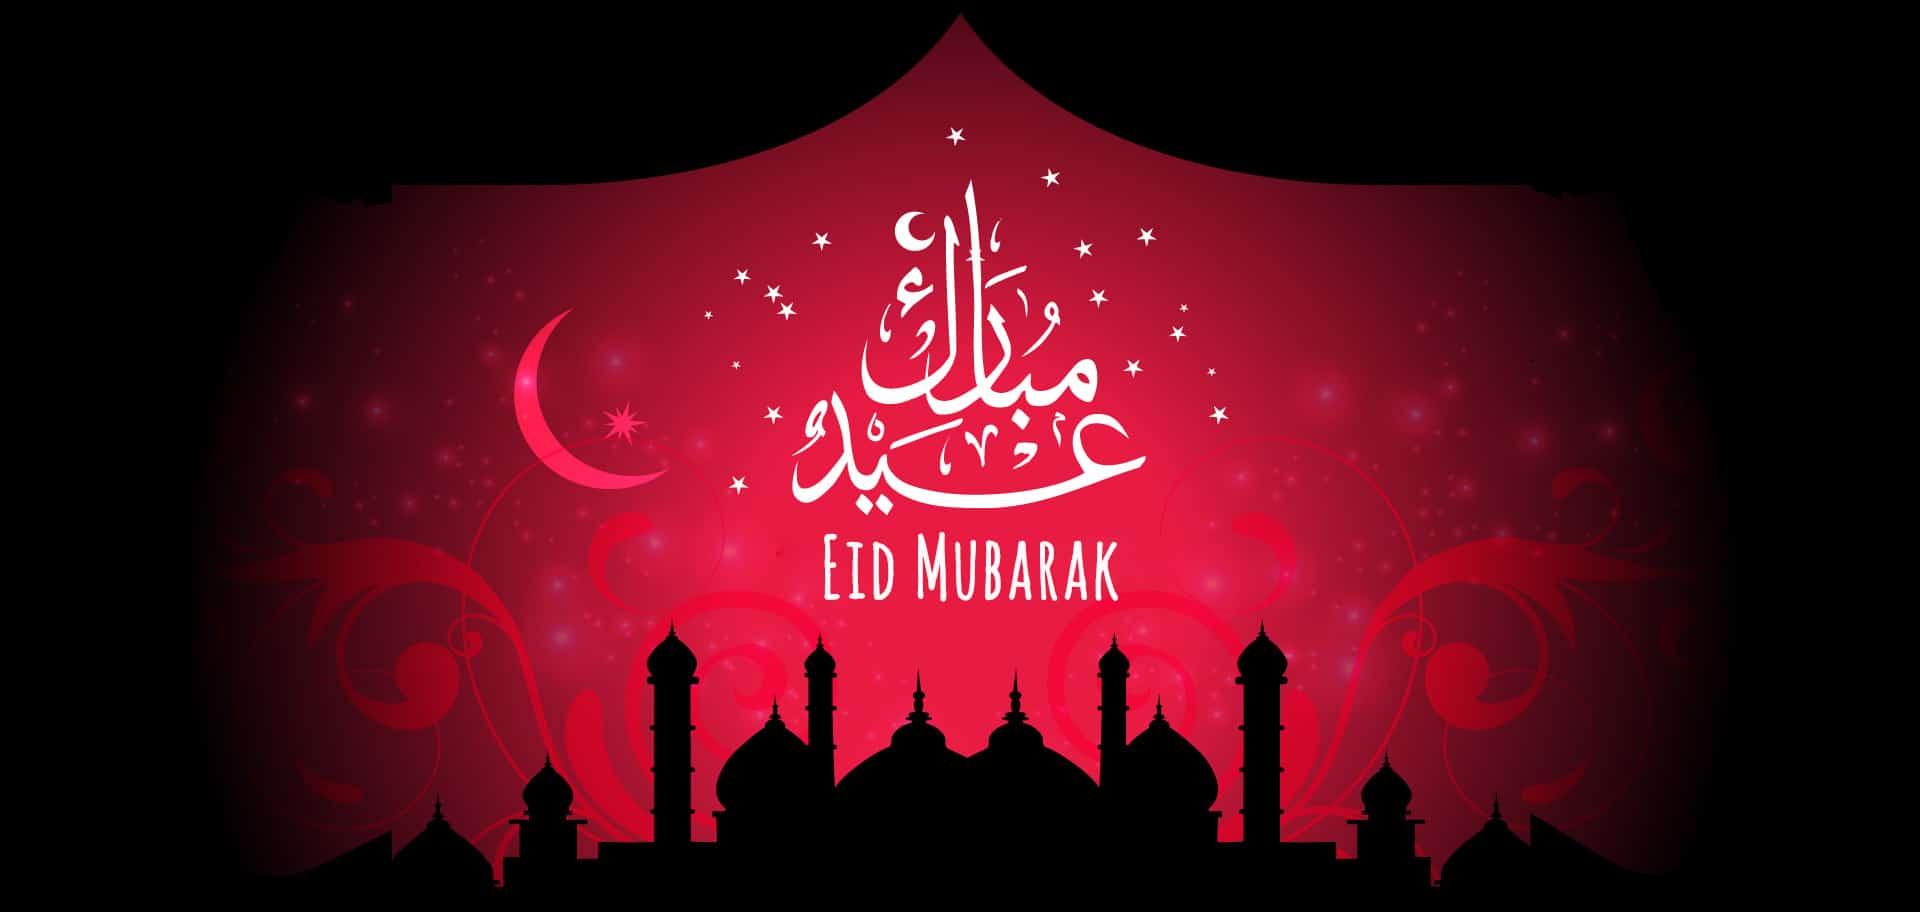 eid ul fitr greetings 2018